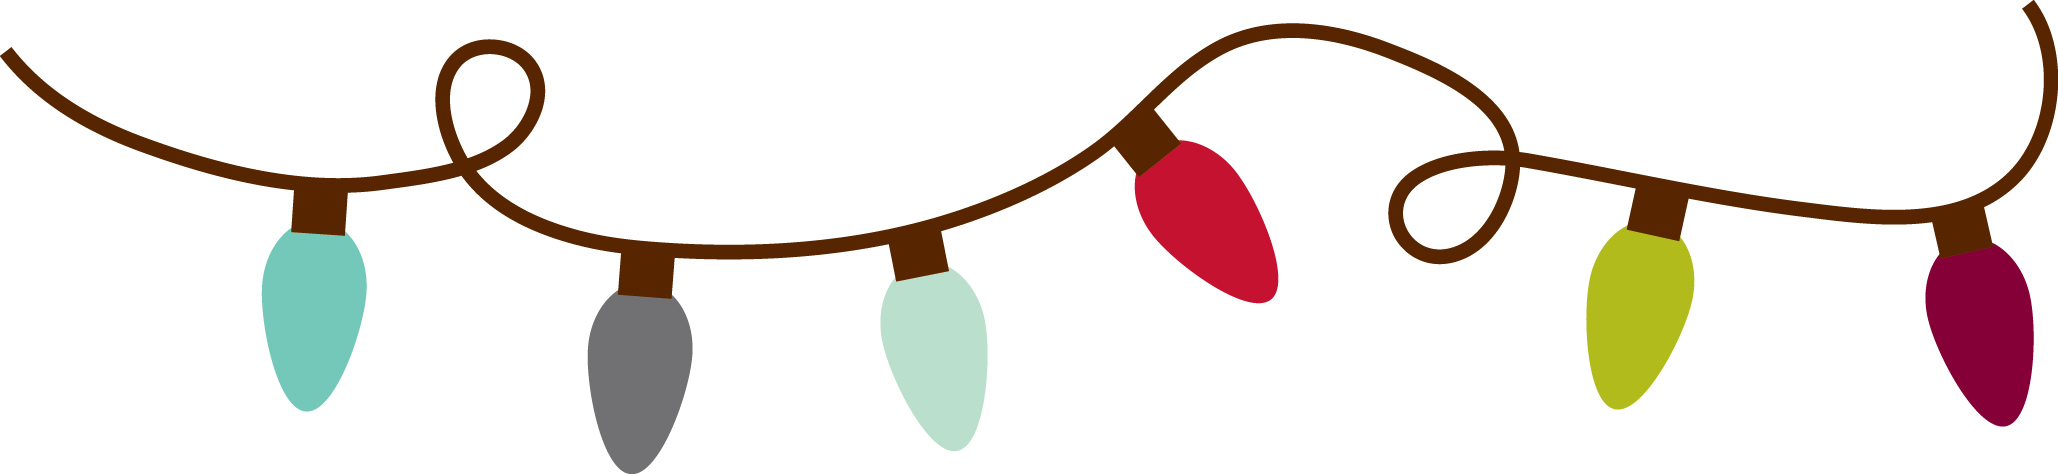 December clipart border. Xmas party png transparent